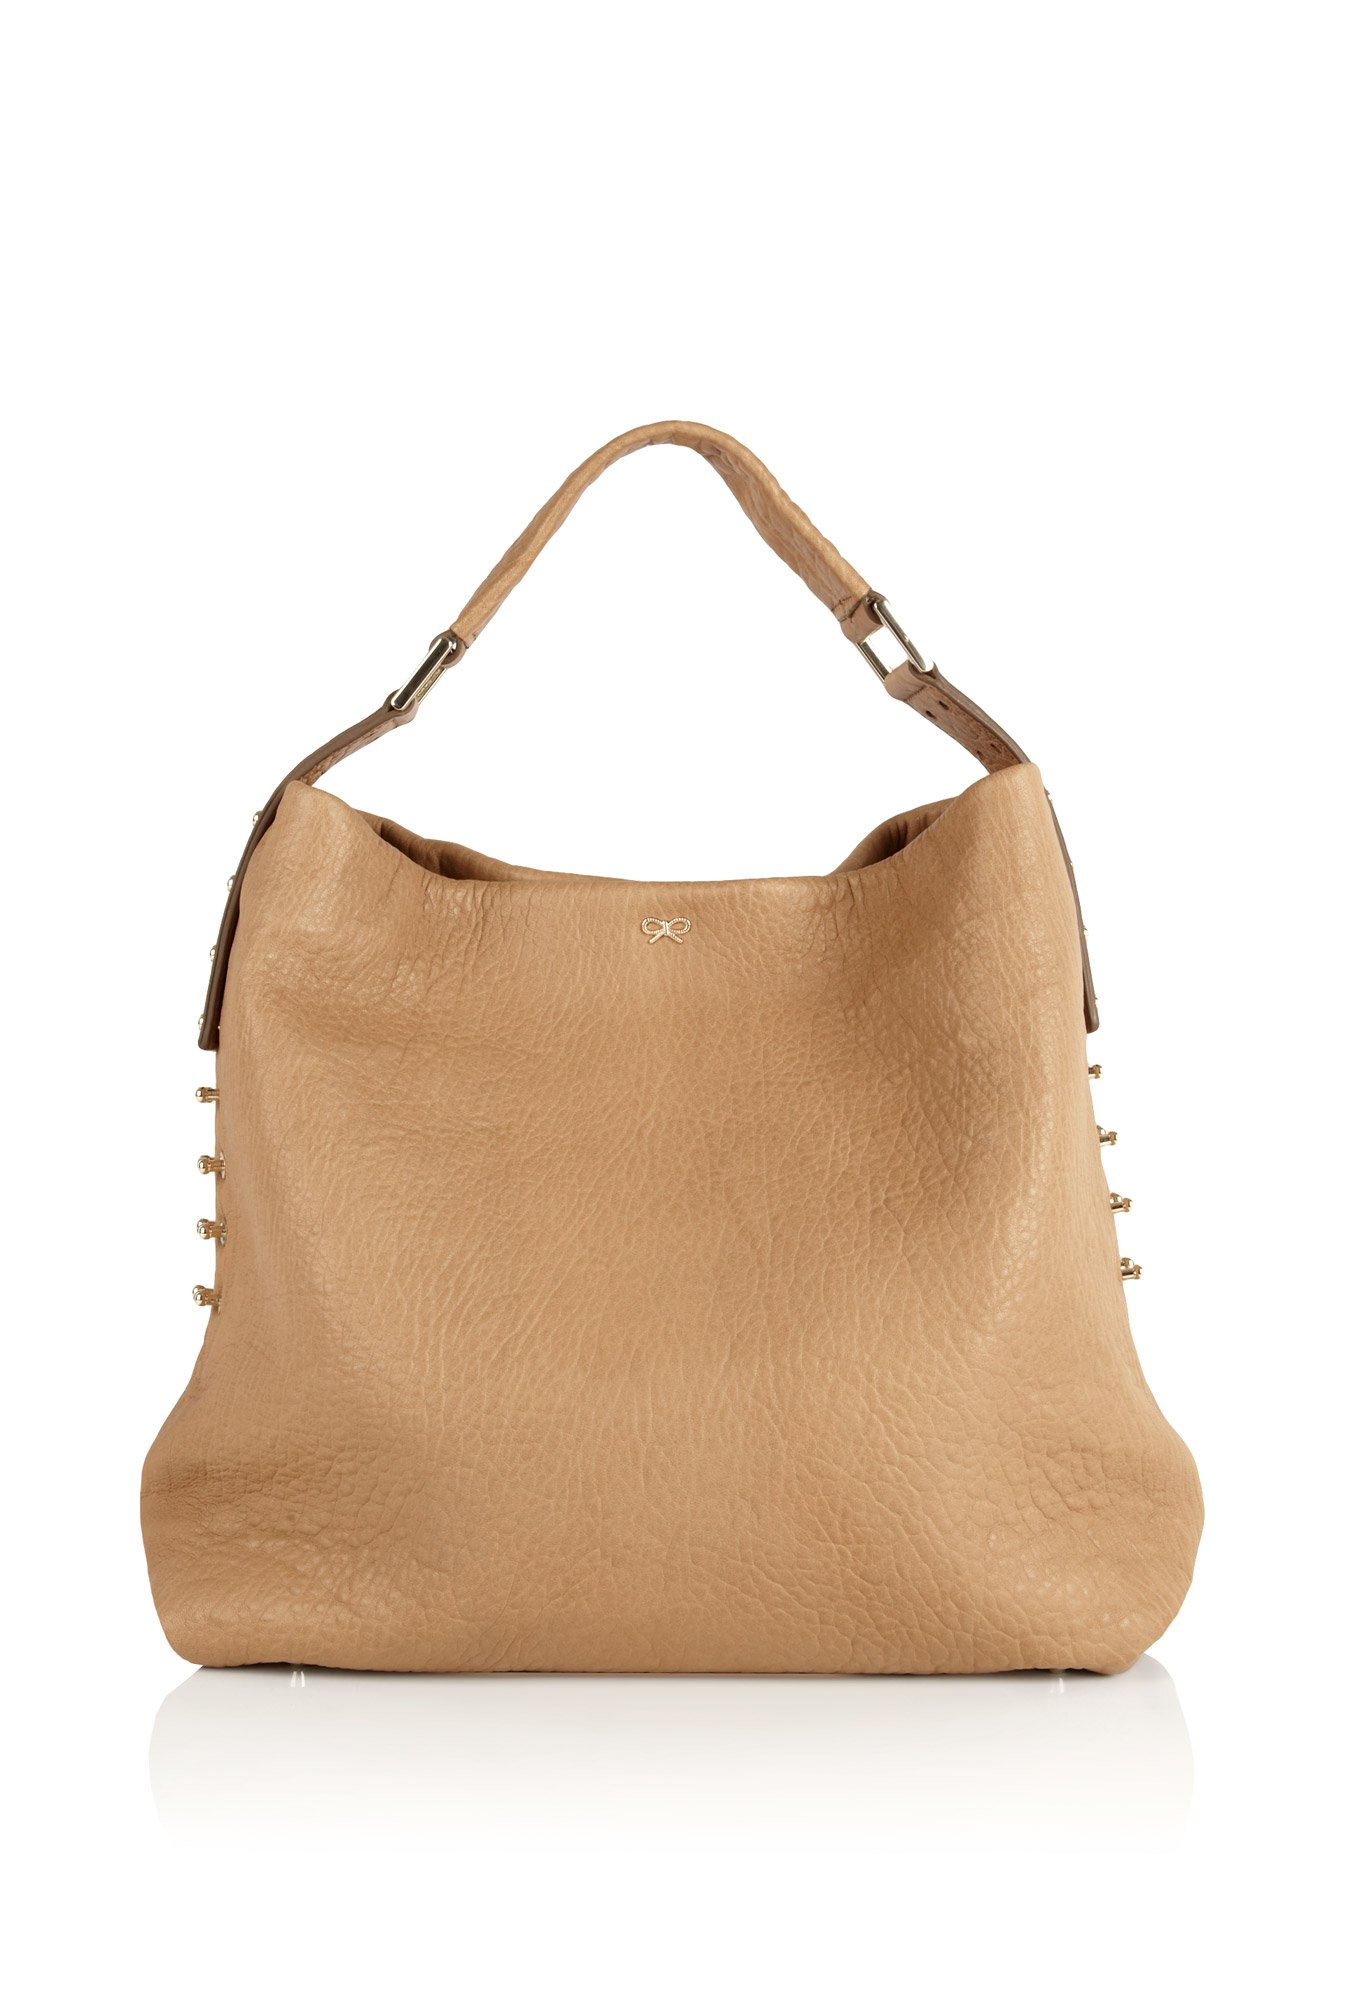 Anya Hindmarch Studded Shoulder Bag 7